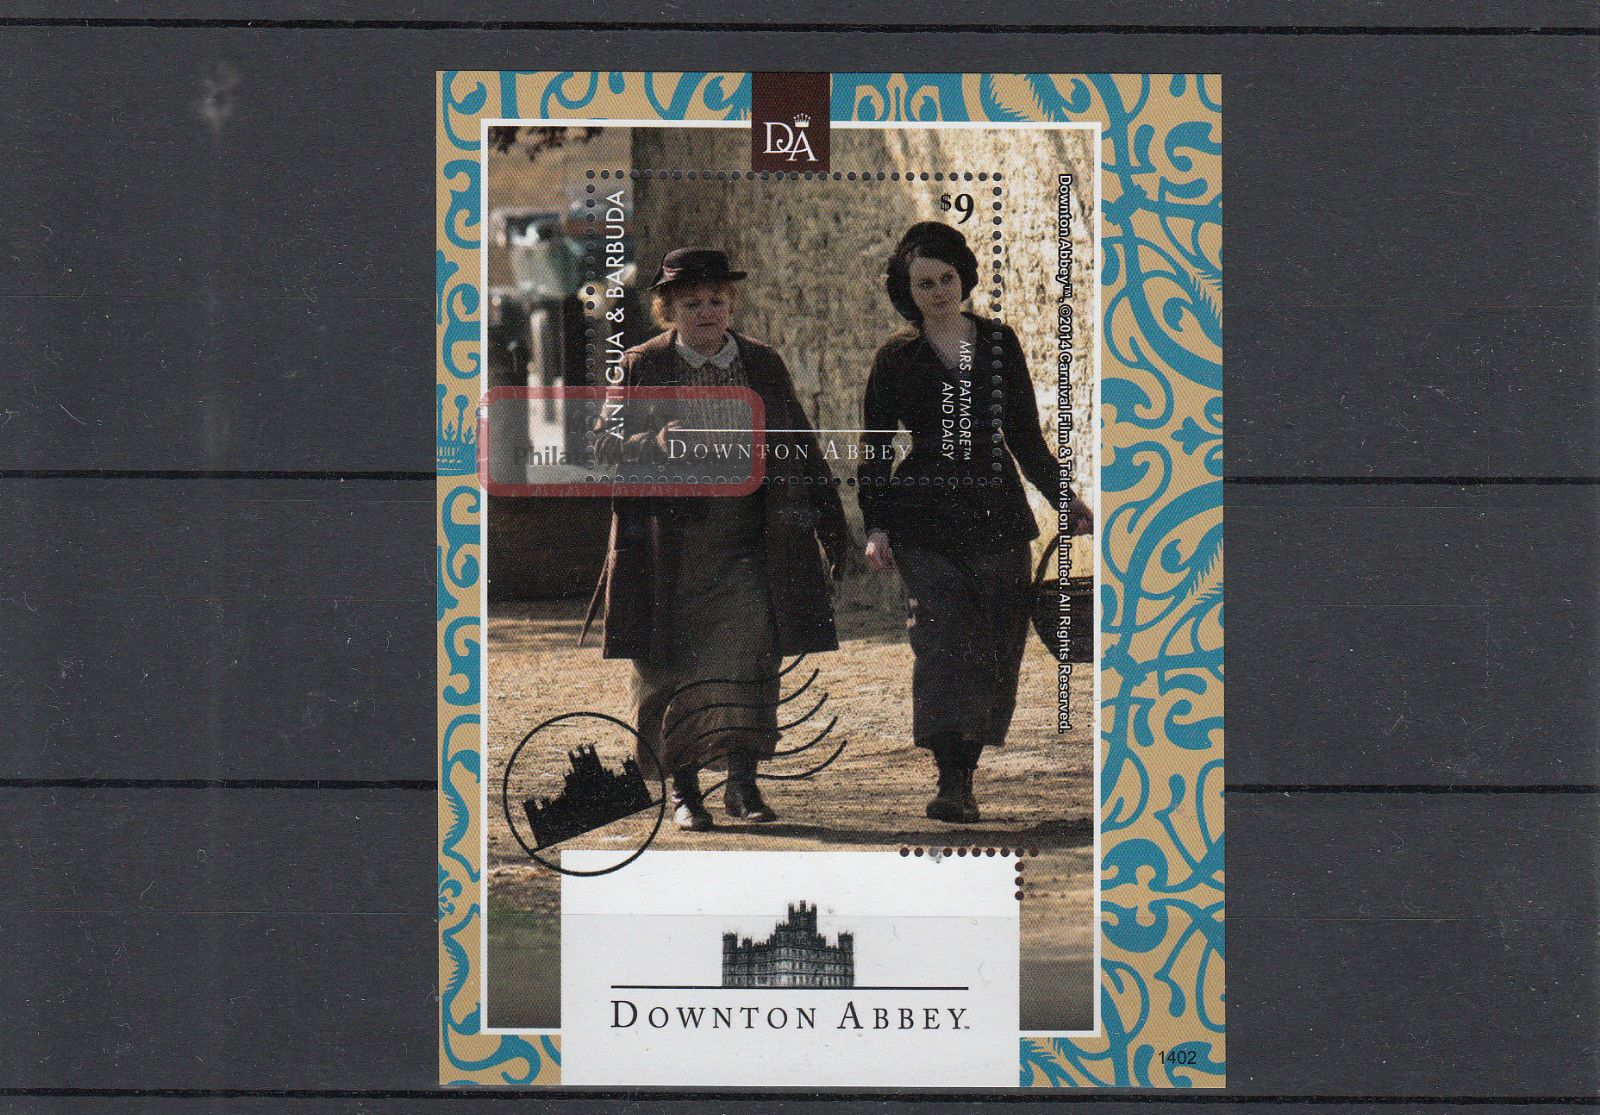 Antigua & Barbuda 2014 Downton Abbey 1v S/s Mrs Patmore Daisy Tv Series Caribbean photo